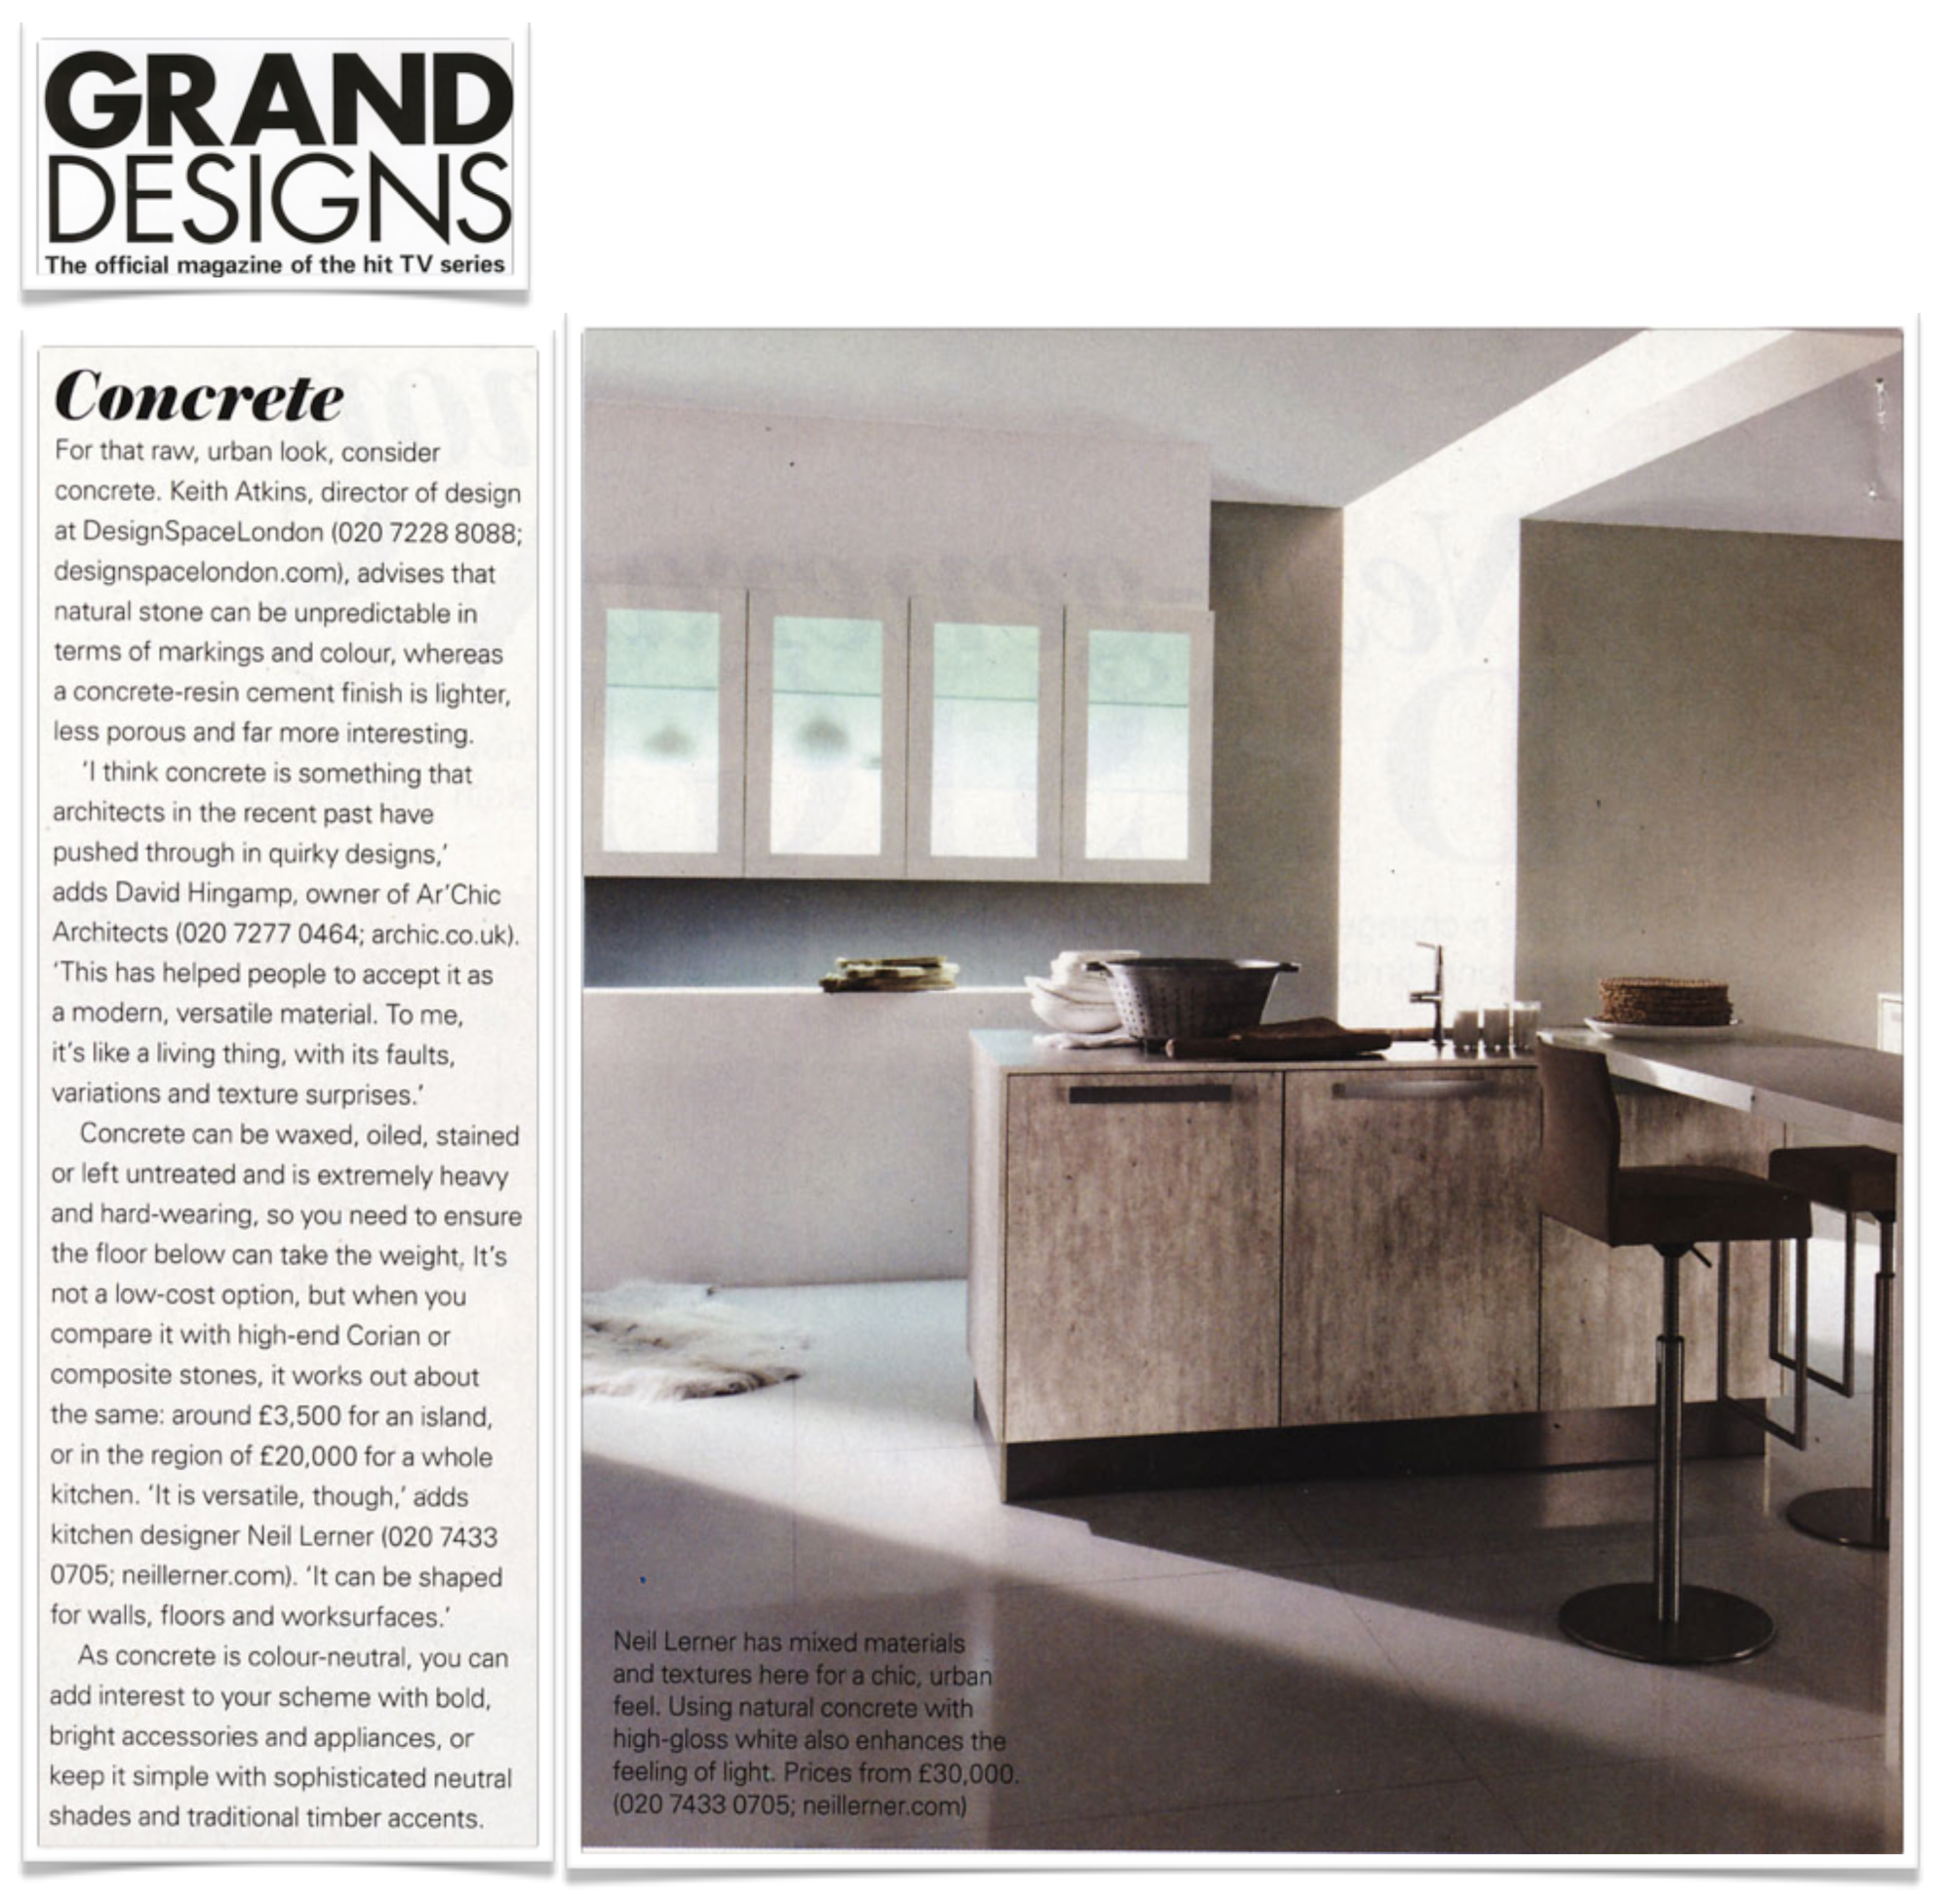 New Modern Kitchens At Neil Lerner: Concrete In The Kitchen?